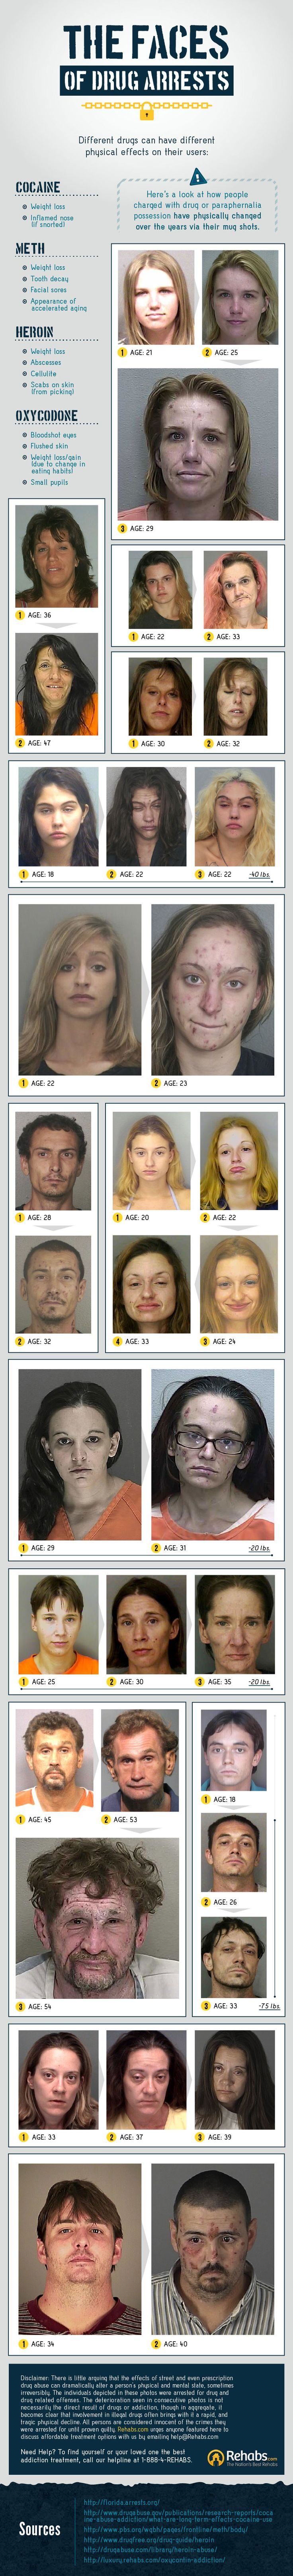 Newest Faces of Meth Drug Transformations Are Shocking  #breakingbad #cocaine #drugs #heisenberg #heroin #meth #oxycodone